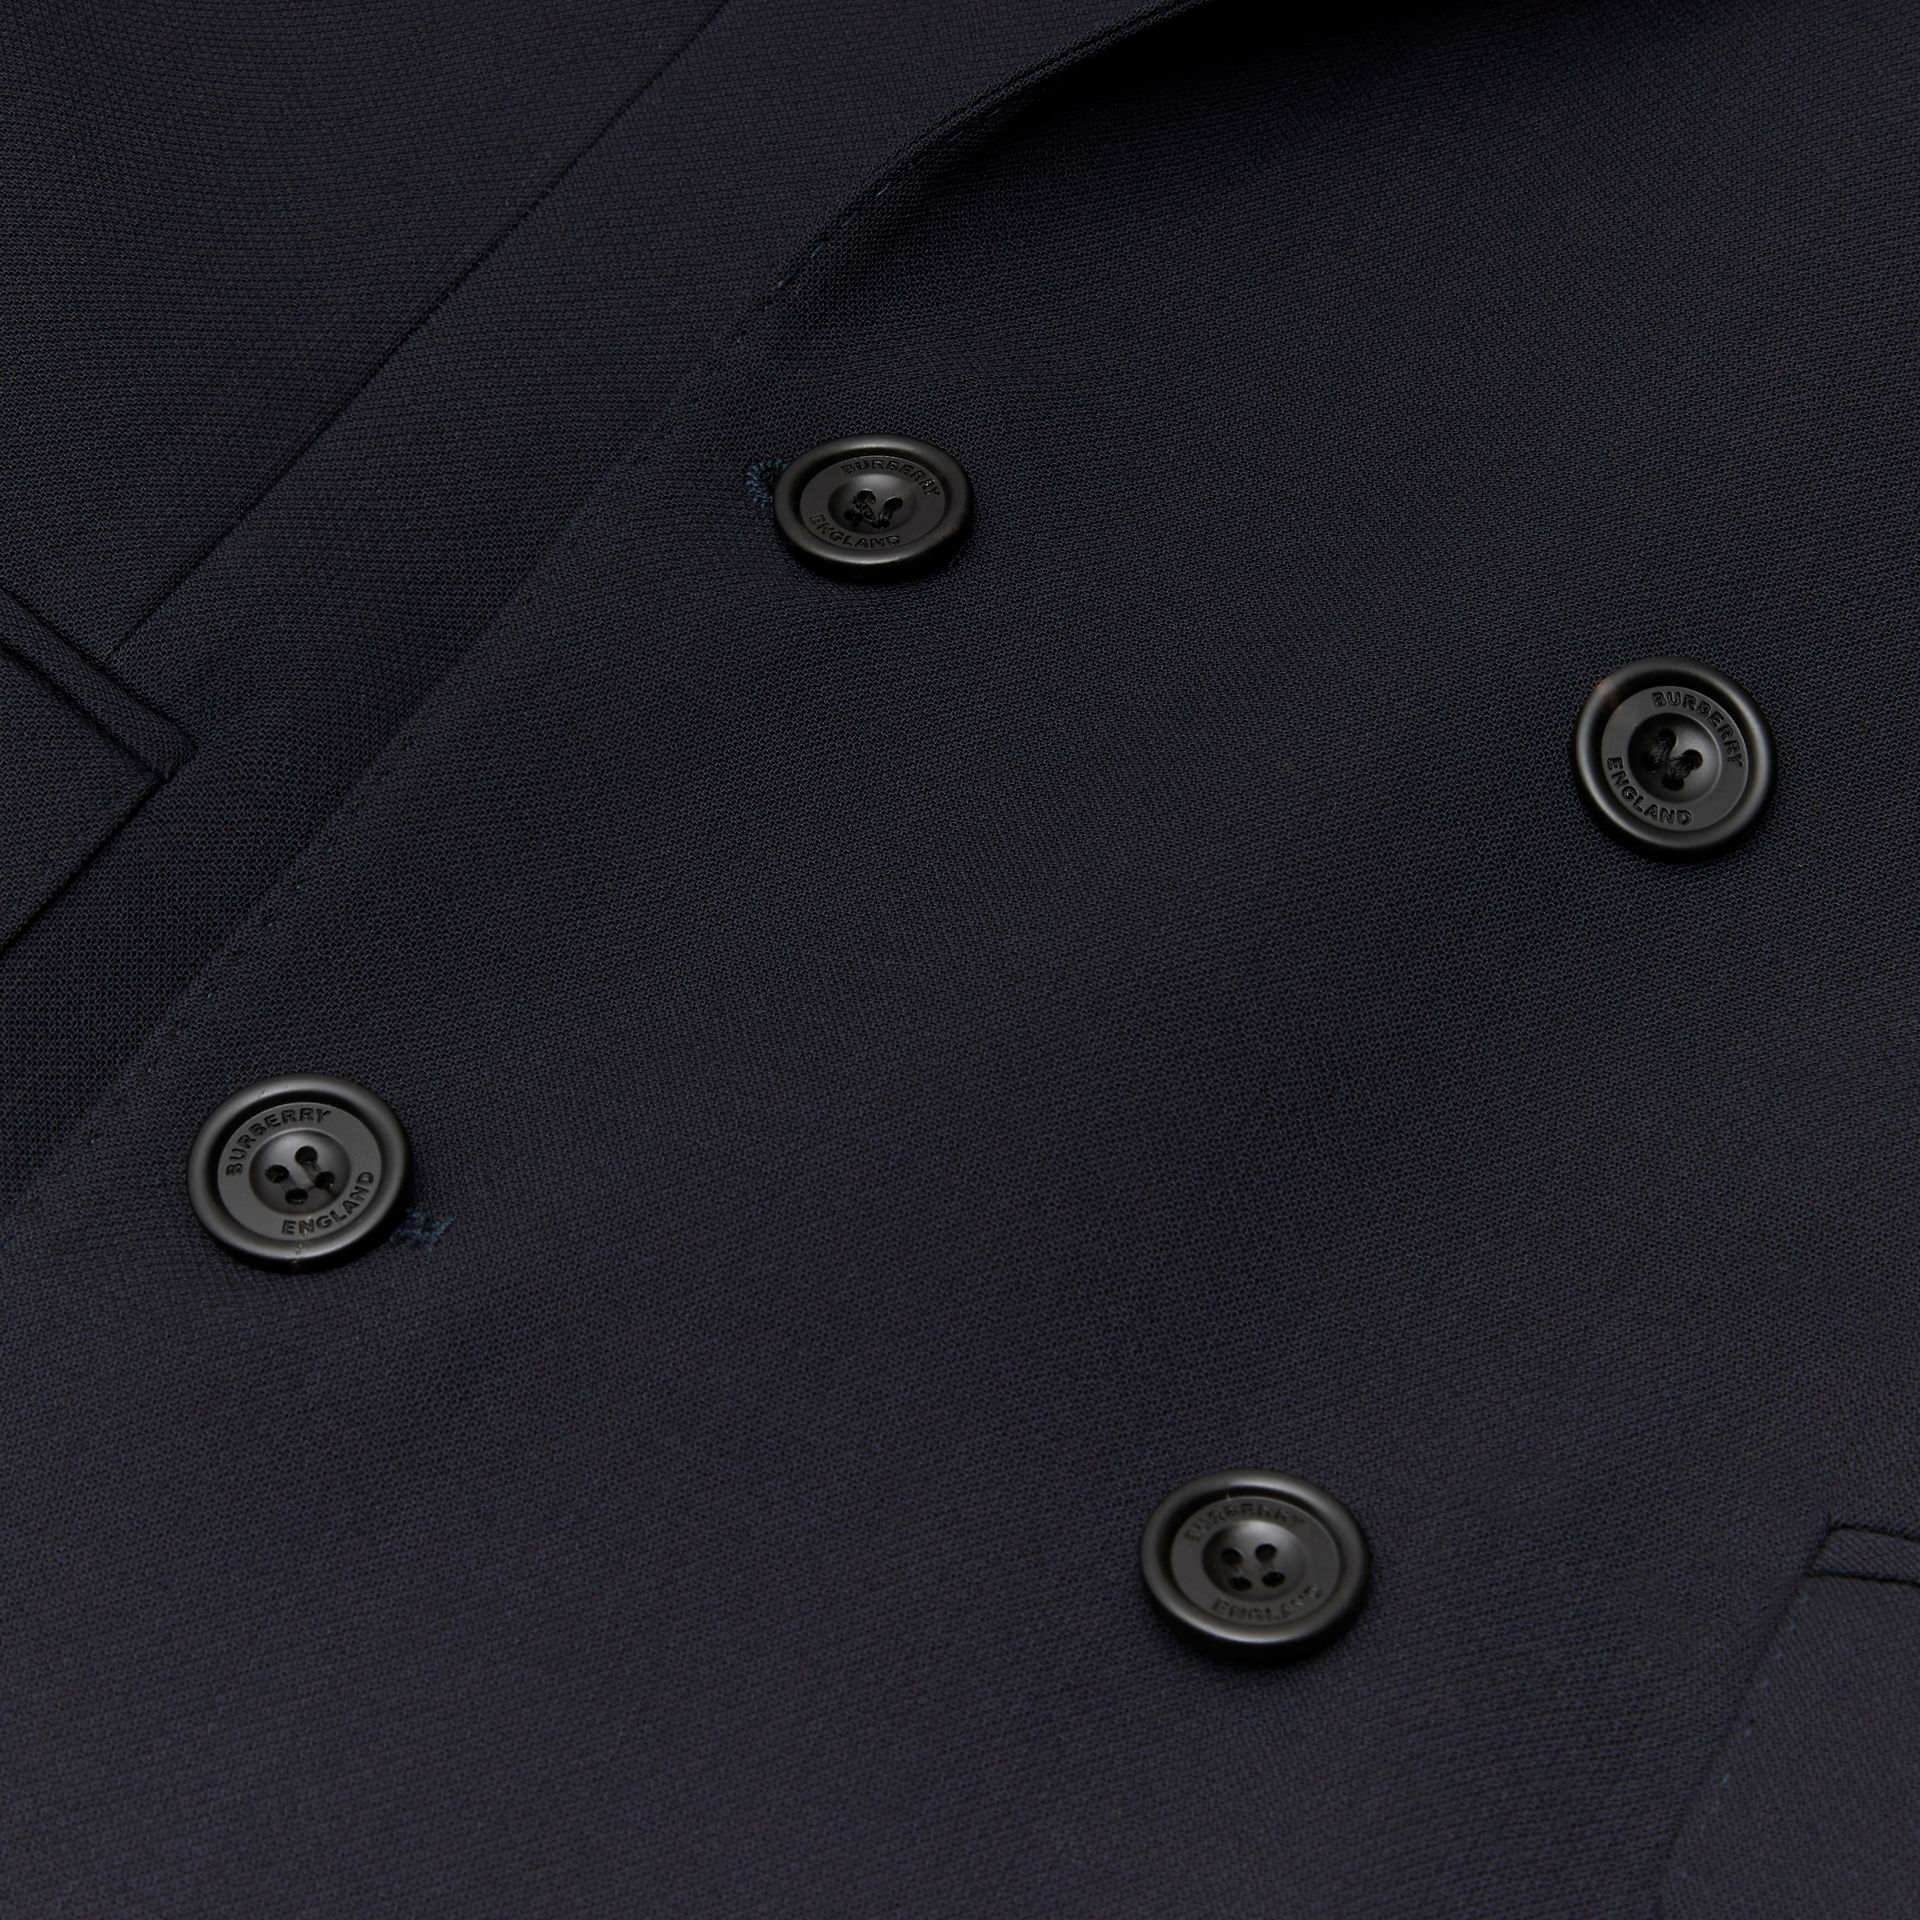 English Fit Double-faced Wool Crepe Tailored Jacket in Navy - Men | Burberry - gallery image 6